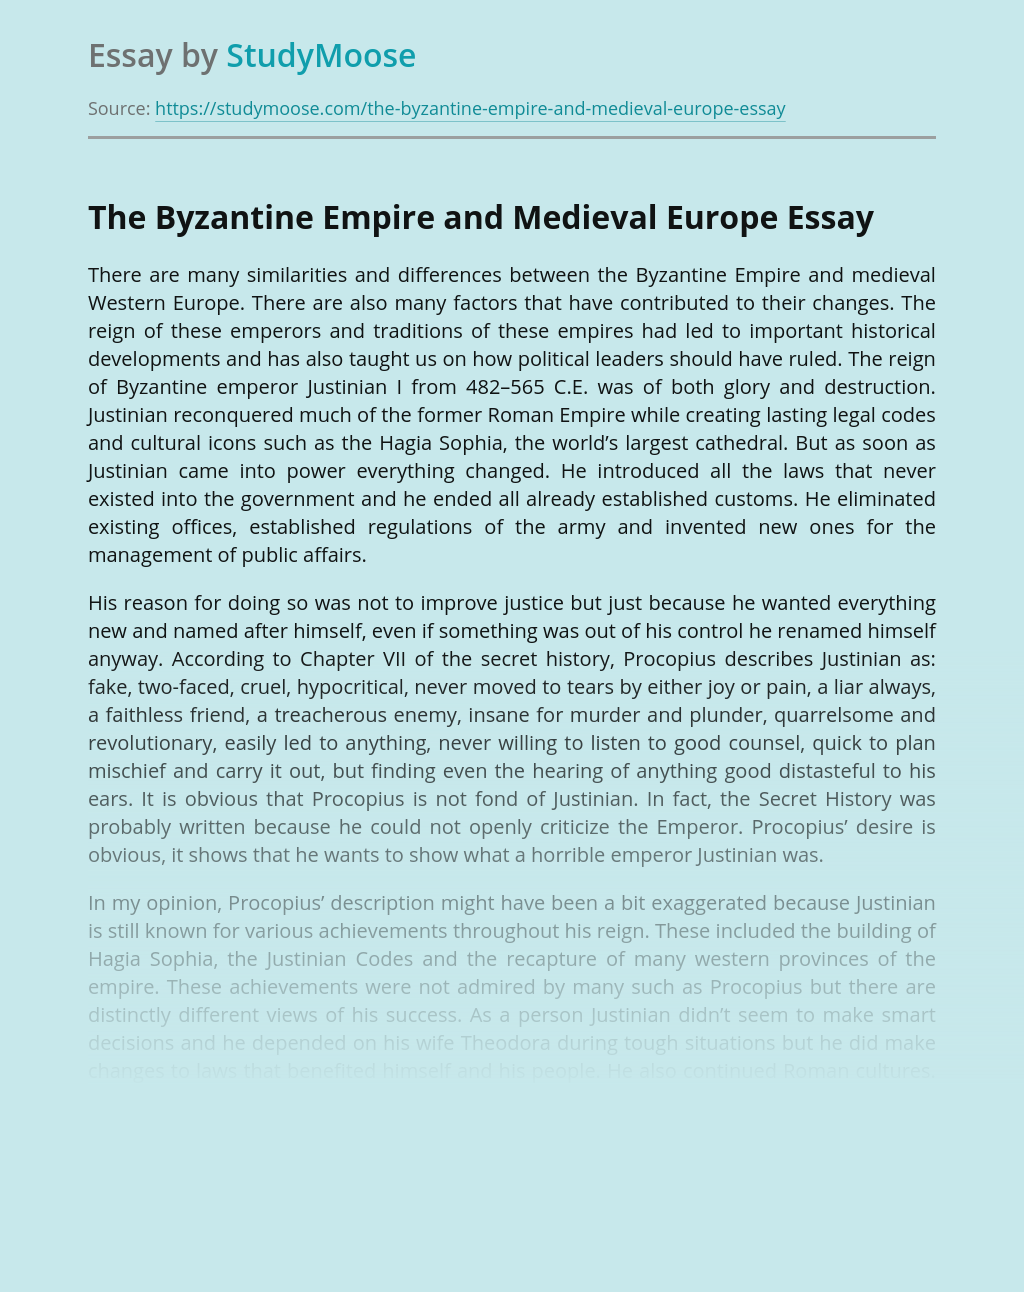 The Byzantine Empire and Medieval Europe